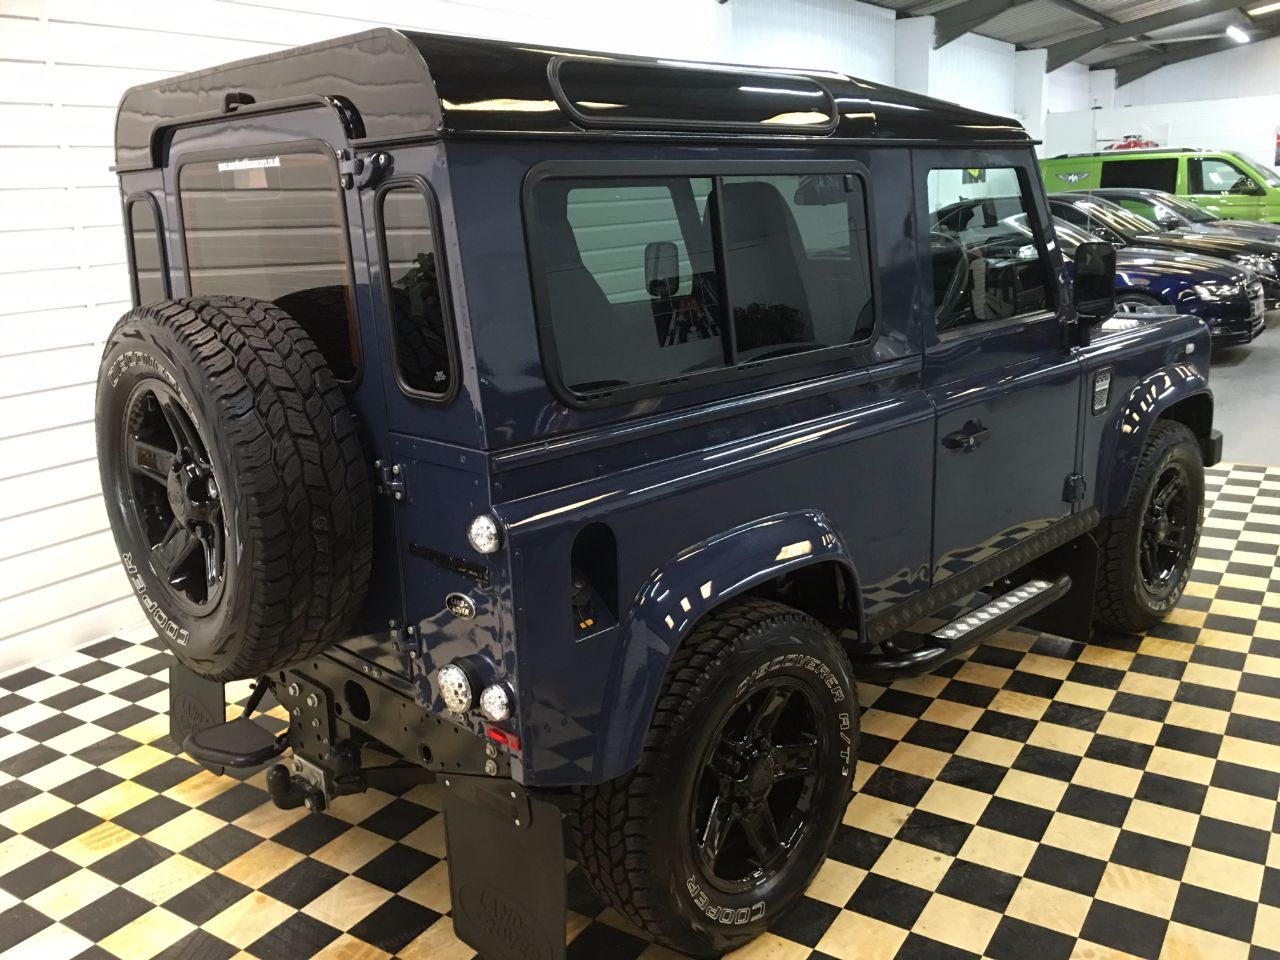 Land Rover Defender County Station Wagon TDCi [2.2] 4 SEATER Four Wheel Drive Diesel Tamar Blue